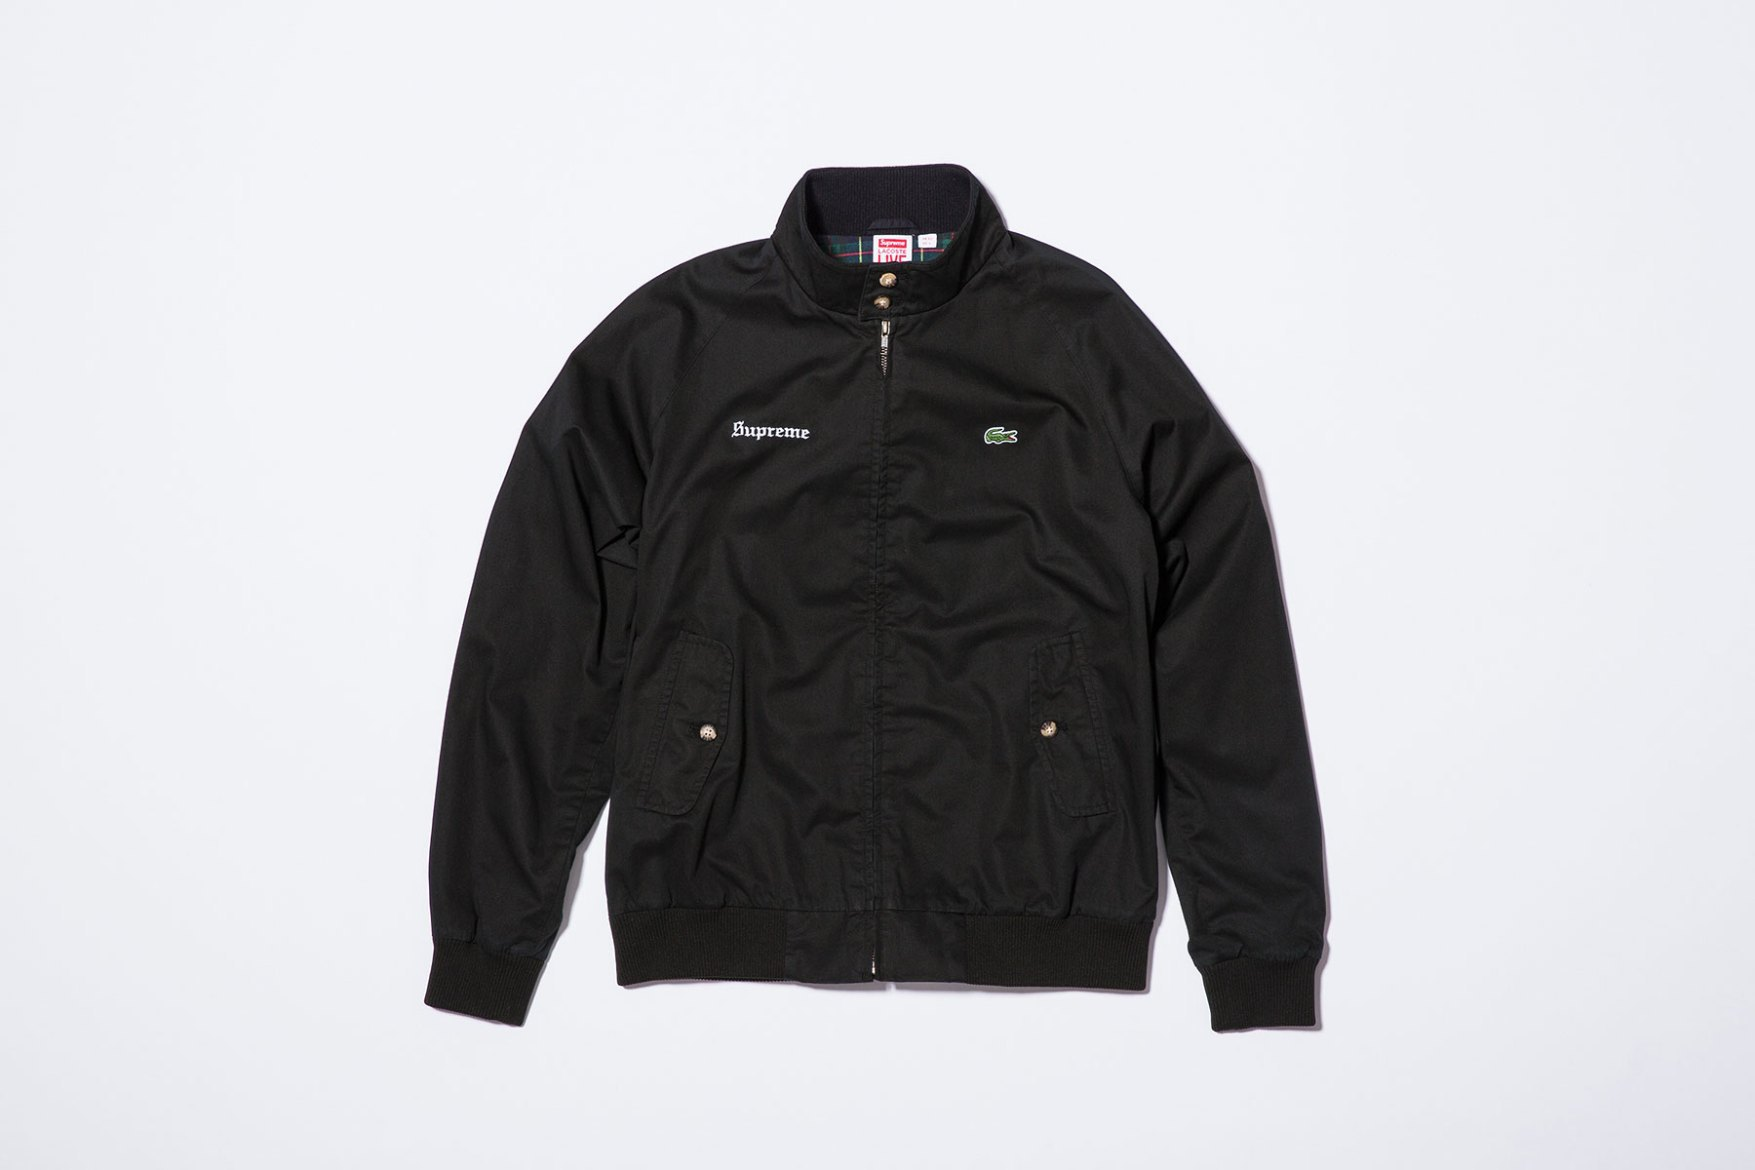 lacoste-supreme-black-harrington-jacket-2017-spring-summer-10